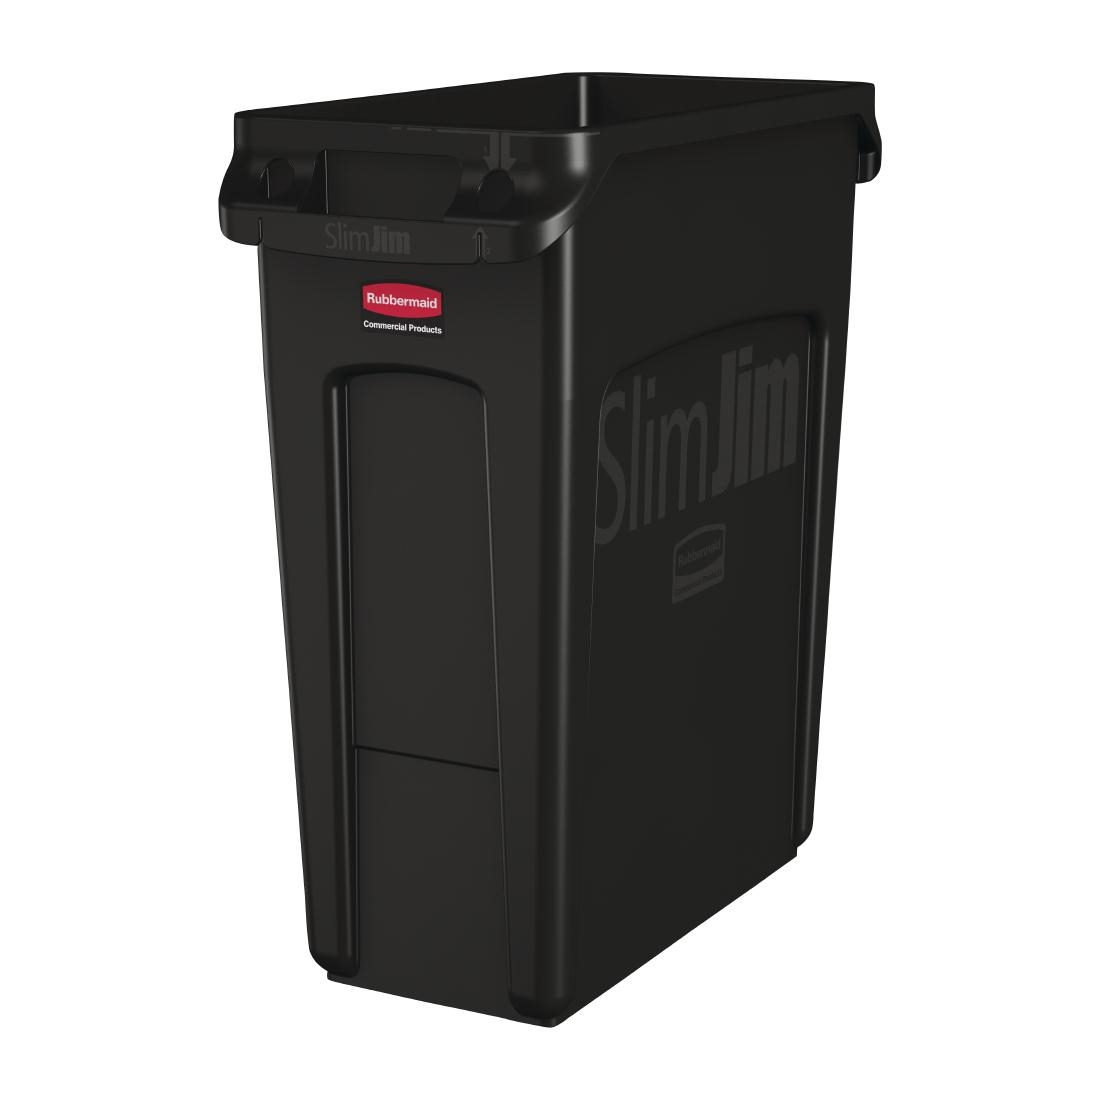 Rubbermaid Slim Jim Container with Venting Channels Black 60Ltr